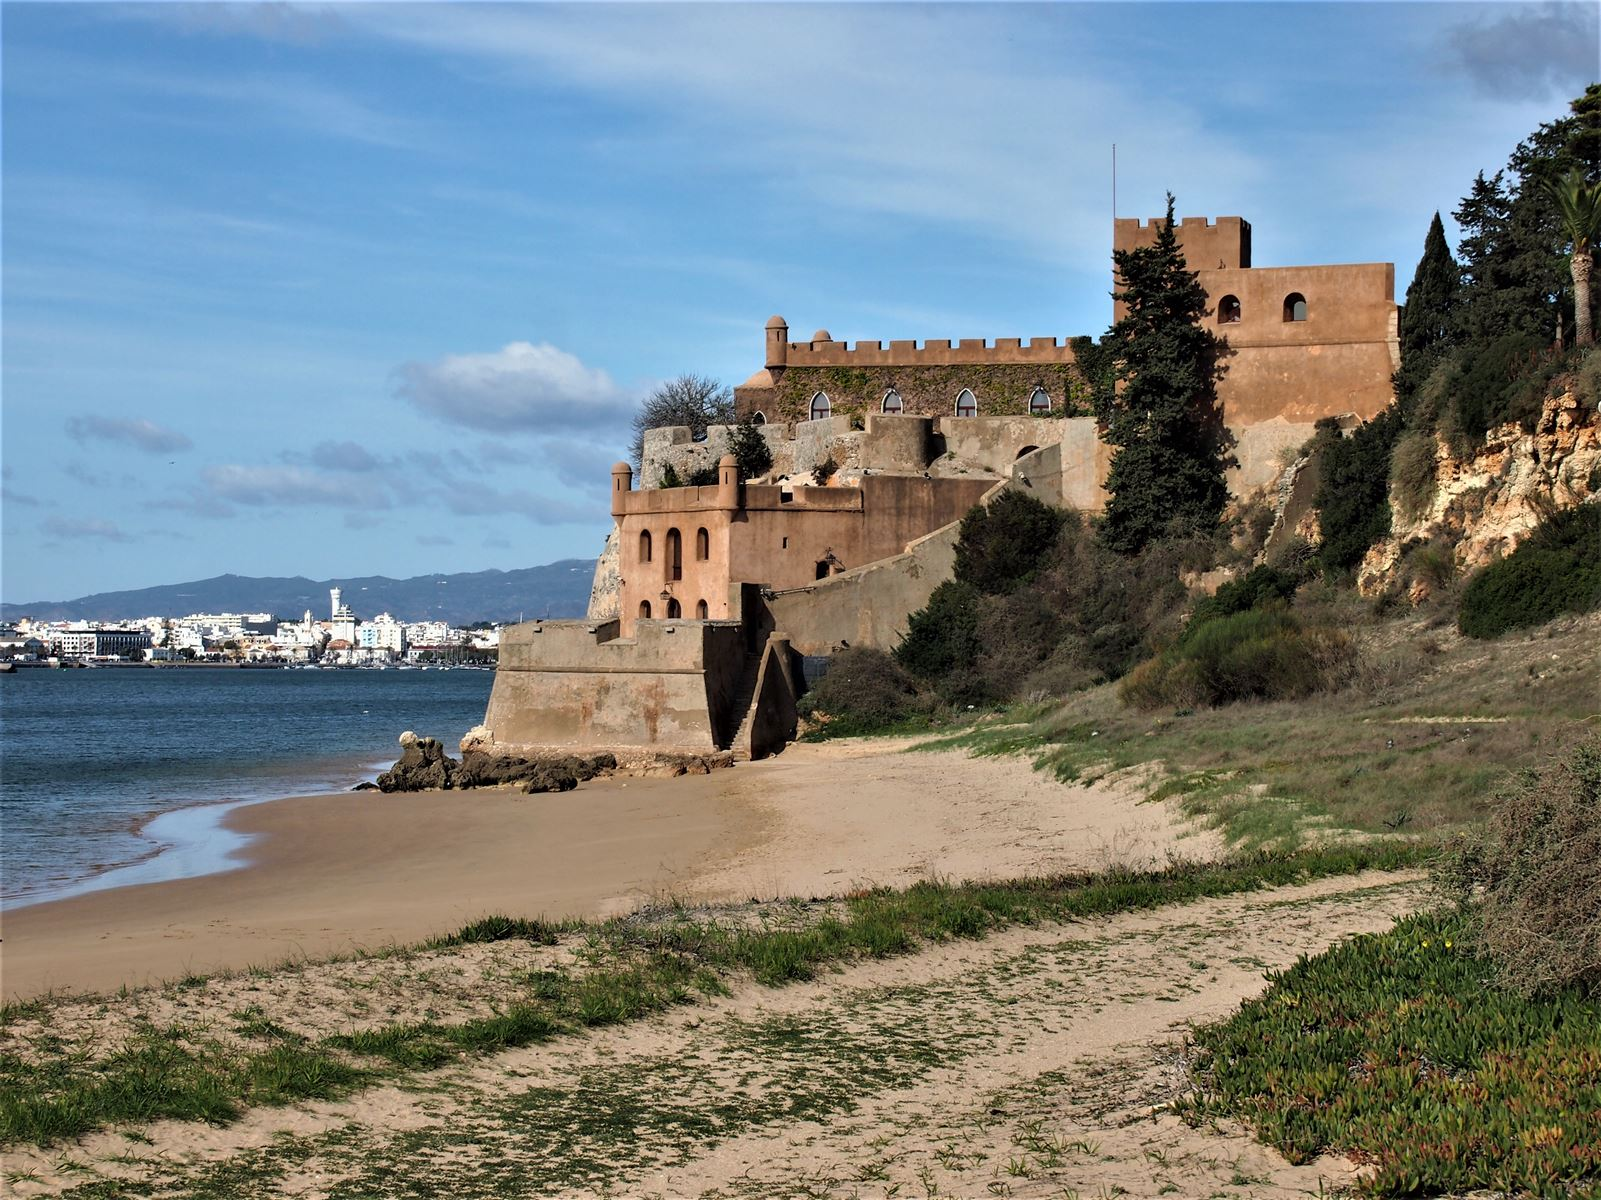 The castle of São João do Arade, now privately owned with Praia Grande in the foreground at Ferragudo.